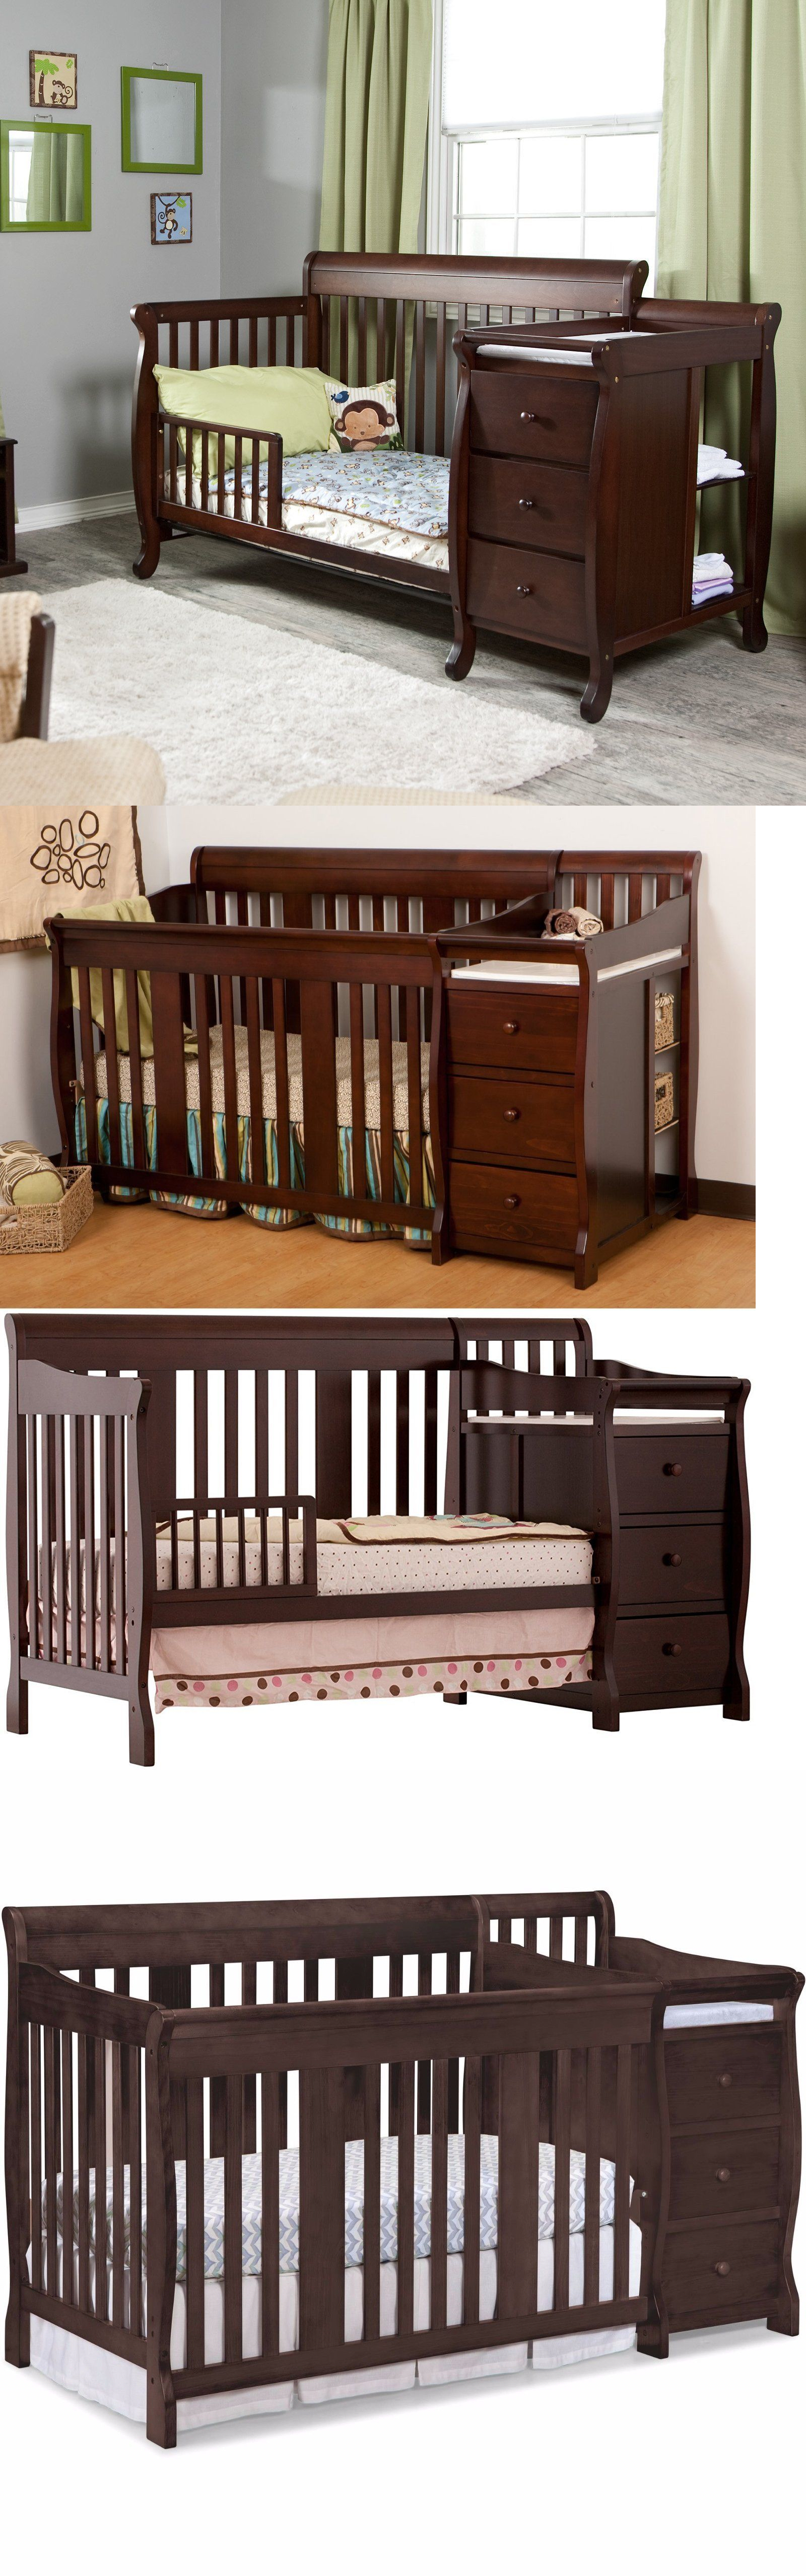 wood today baby on me s convertible crib dream home shipping finish free product in overstock piper natural garden cribs mini